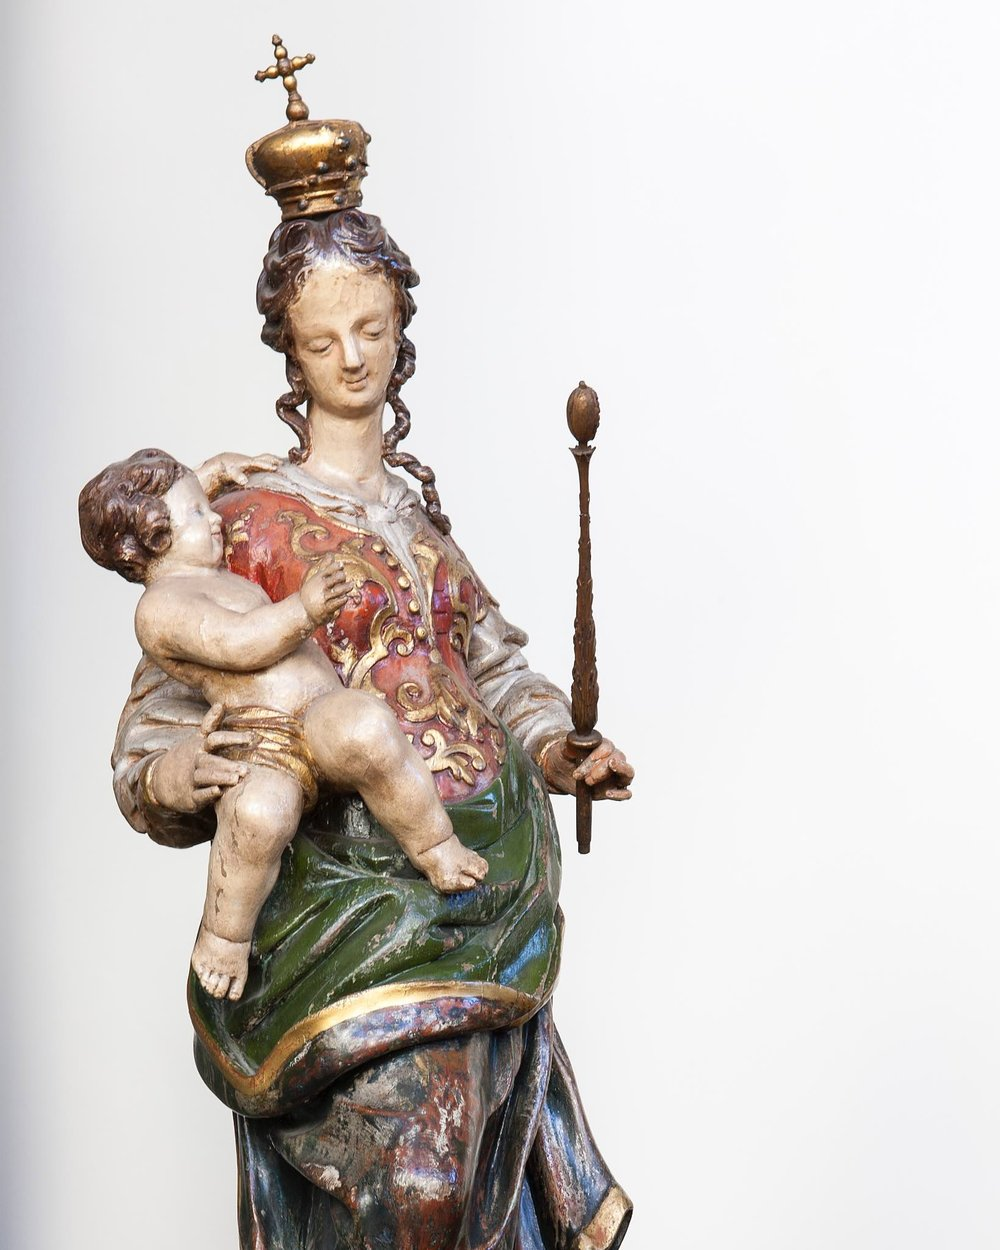 Our Lady and the Infant Jesus - This statue is believed to be Bavarian and to have been carved in the late 18th century.